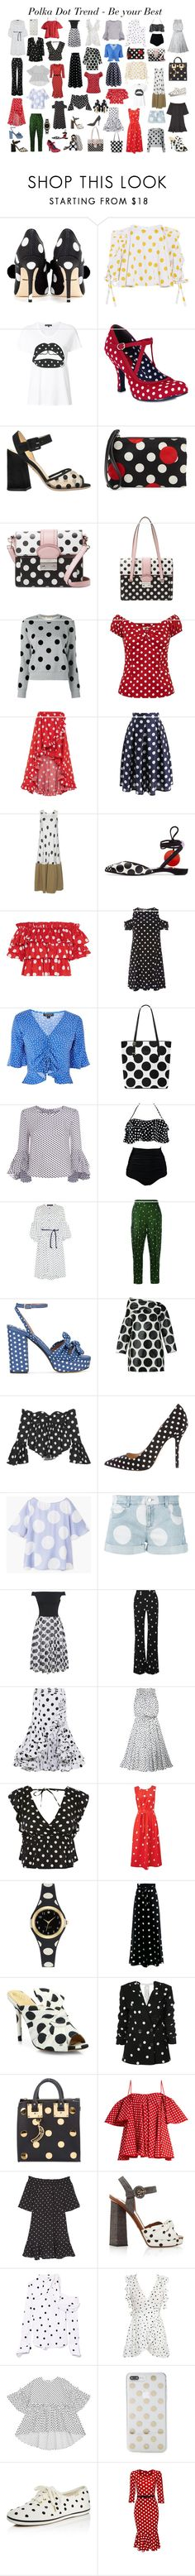 """""""Polka Dot Trend"""" by gabriela2105 ❤ liked on Polyvore featuring Dolce&Gabbana, Caroline Constas, Markus Lupfer, Ruby Shoo, Charlotte Olympia, RED Valentino, Chicwish, Maison Margiela, Pierre Hardy and Dorothy Perkins"""